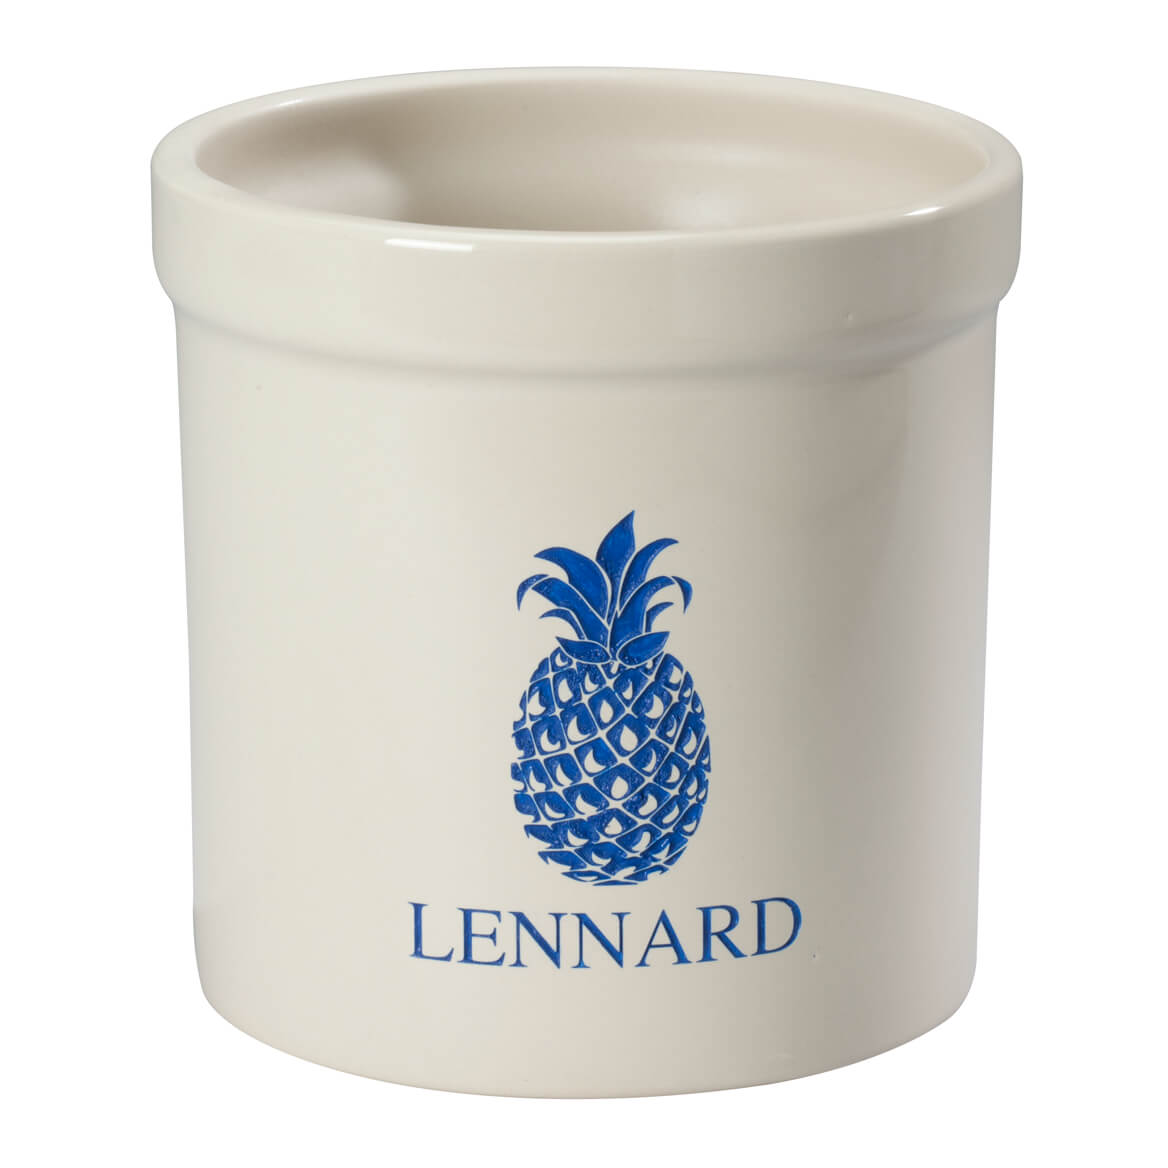 Personalized Pineapple Etched Crock 2 Quart